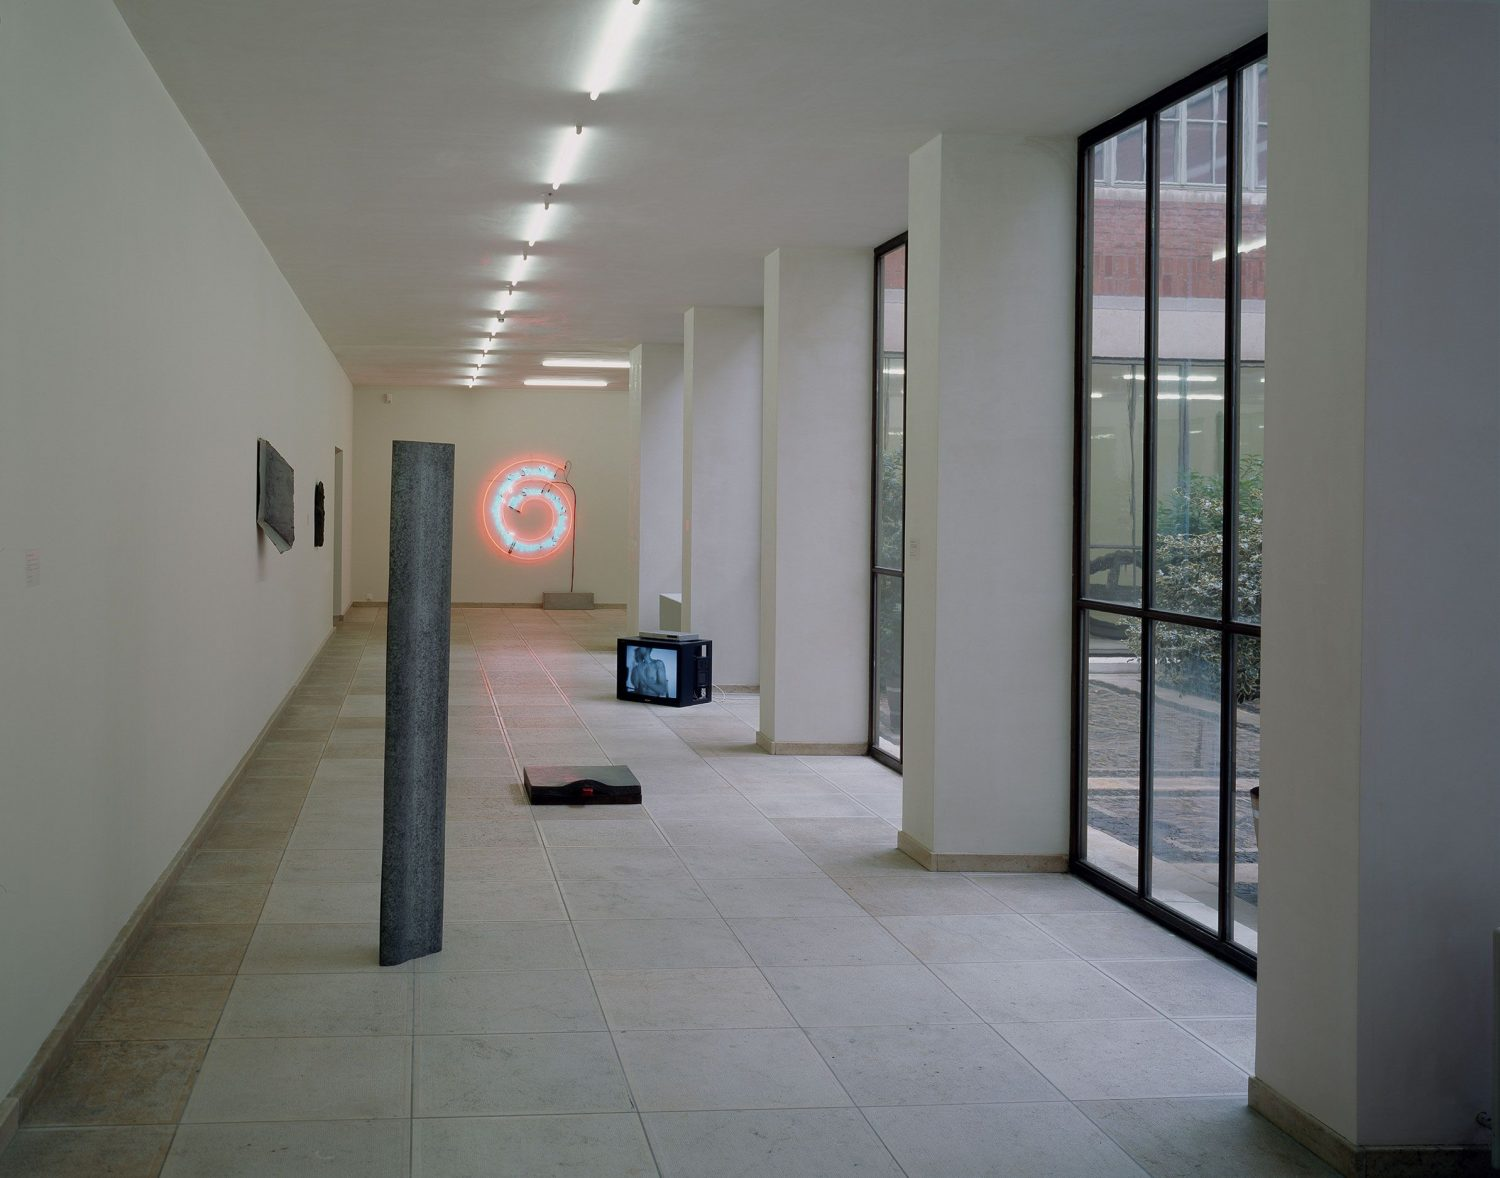 Exhibition space, hallway around small courtyard